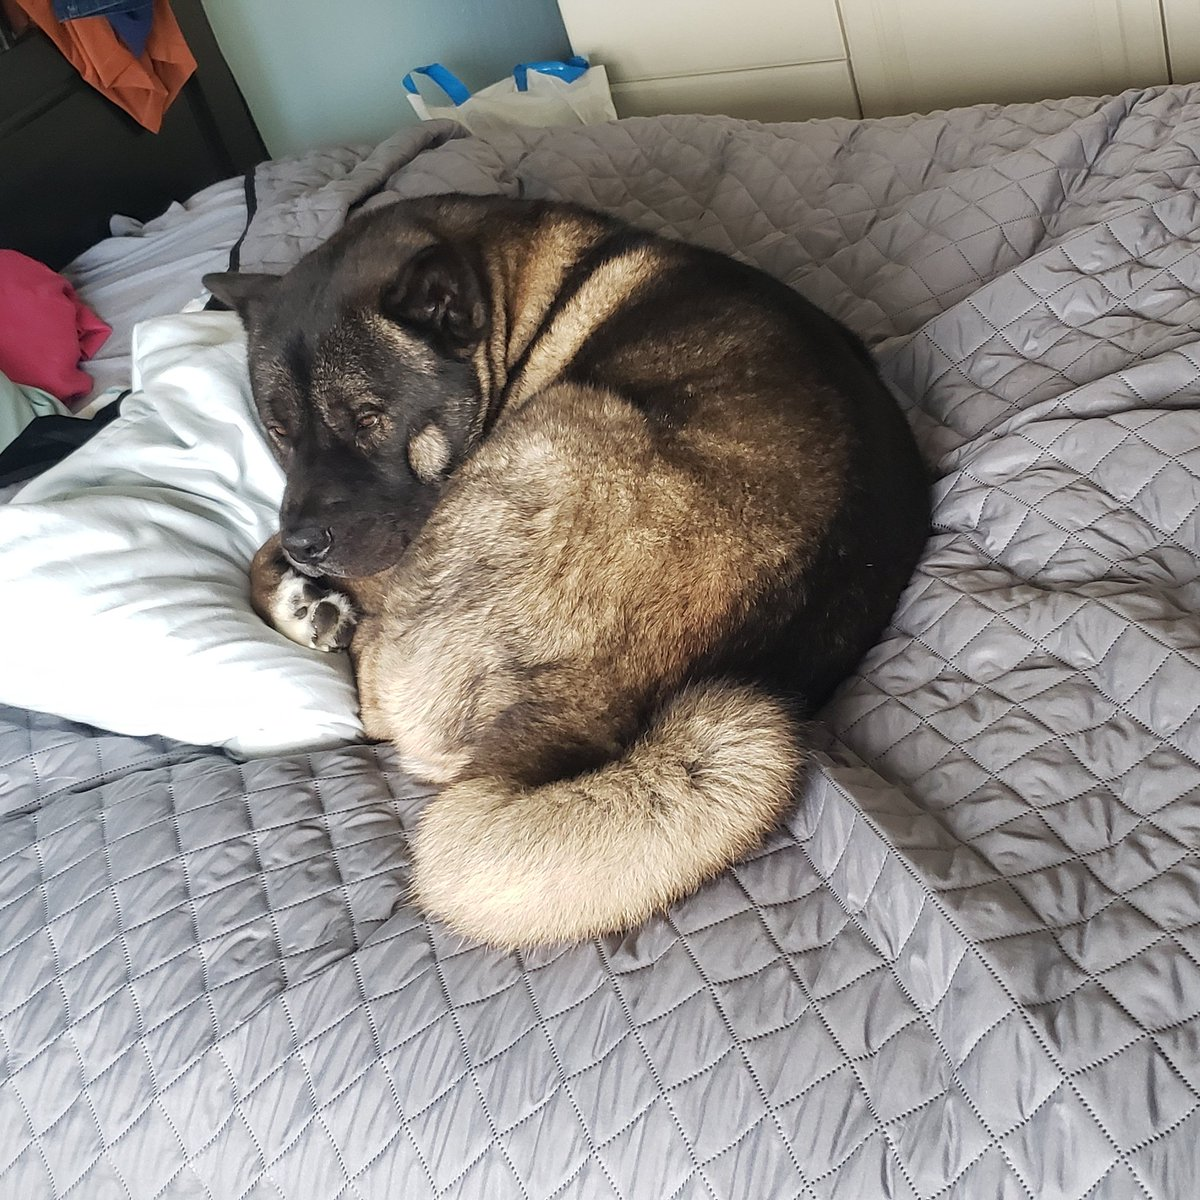 Just chilling today, might stream later idk. #Dog #akita #relax #twitch #stream #BestFriend